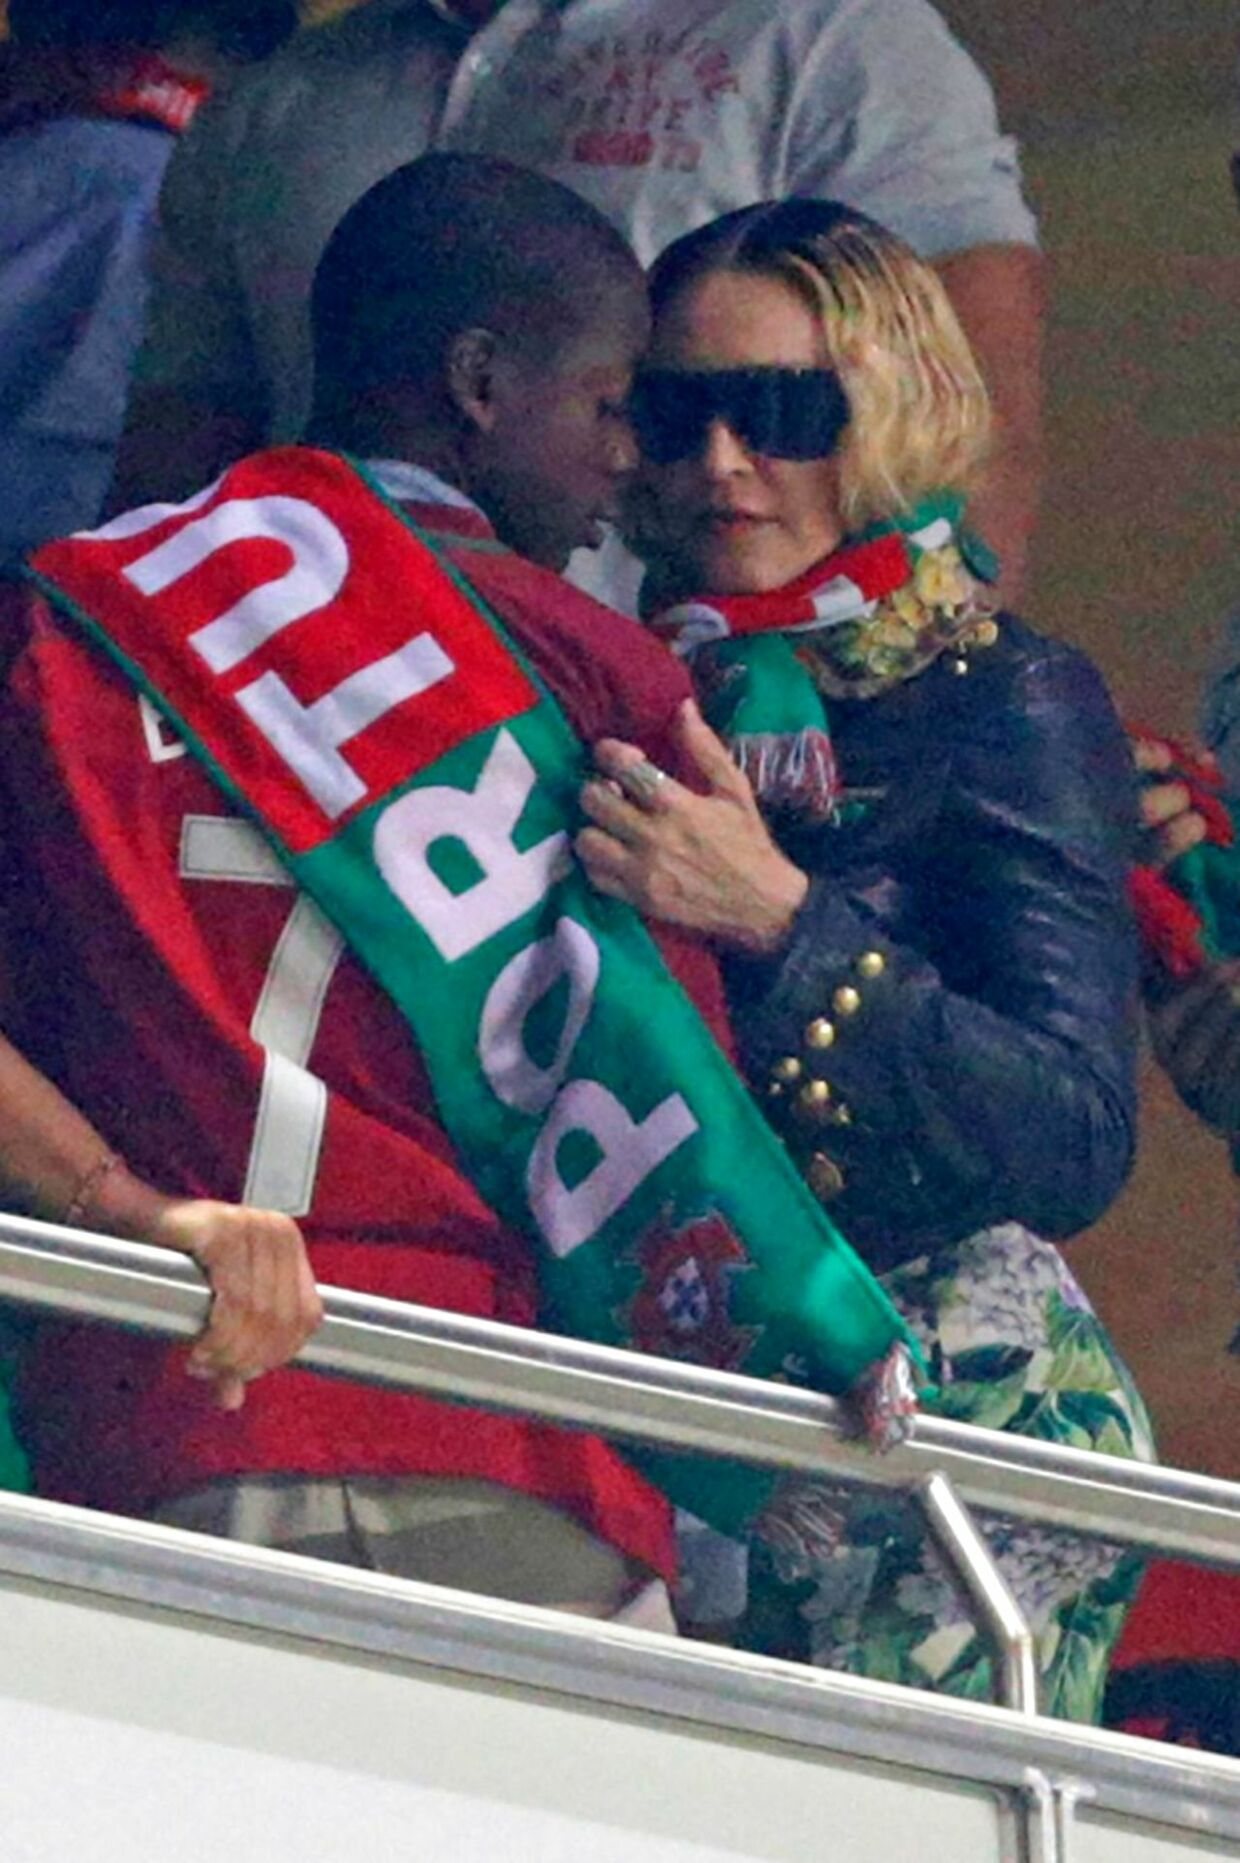 US pop star Madonna (R) and her son David Banda attend during the FIFA World Cup 2018 Group B qualifier football match between Portugal and Switzerland at the Luz Stadium in Lisbon on October 10, 2017. / AFP PHOTO / JOSE MANUEL RIBEIRO